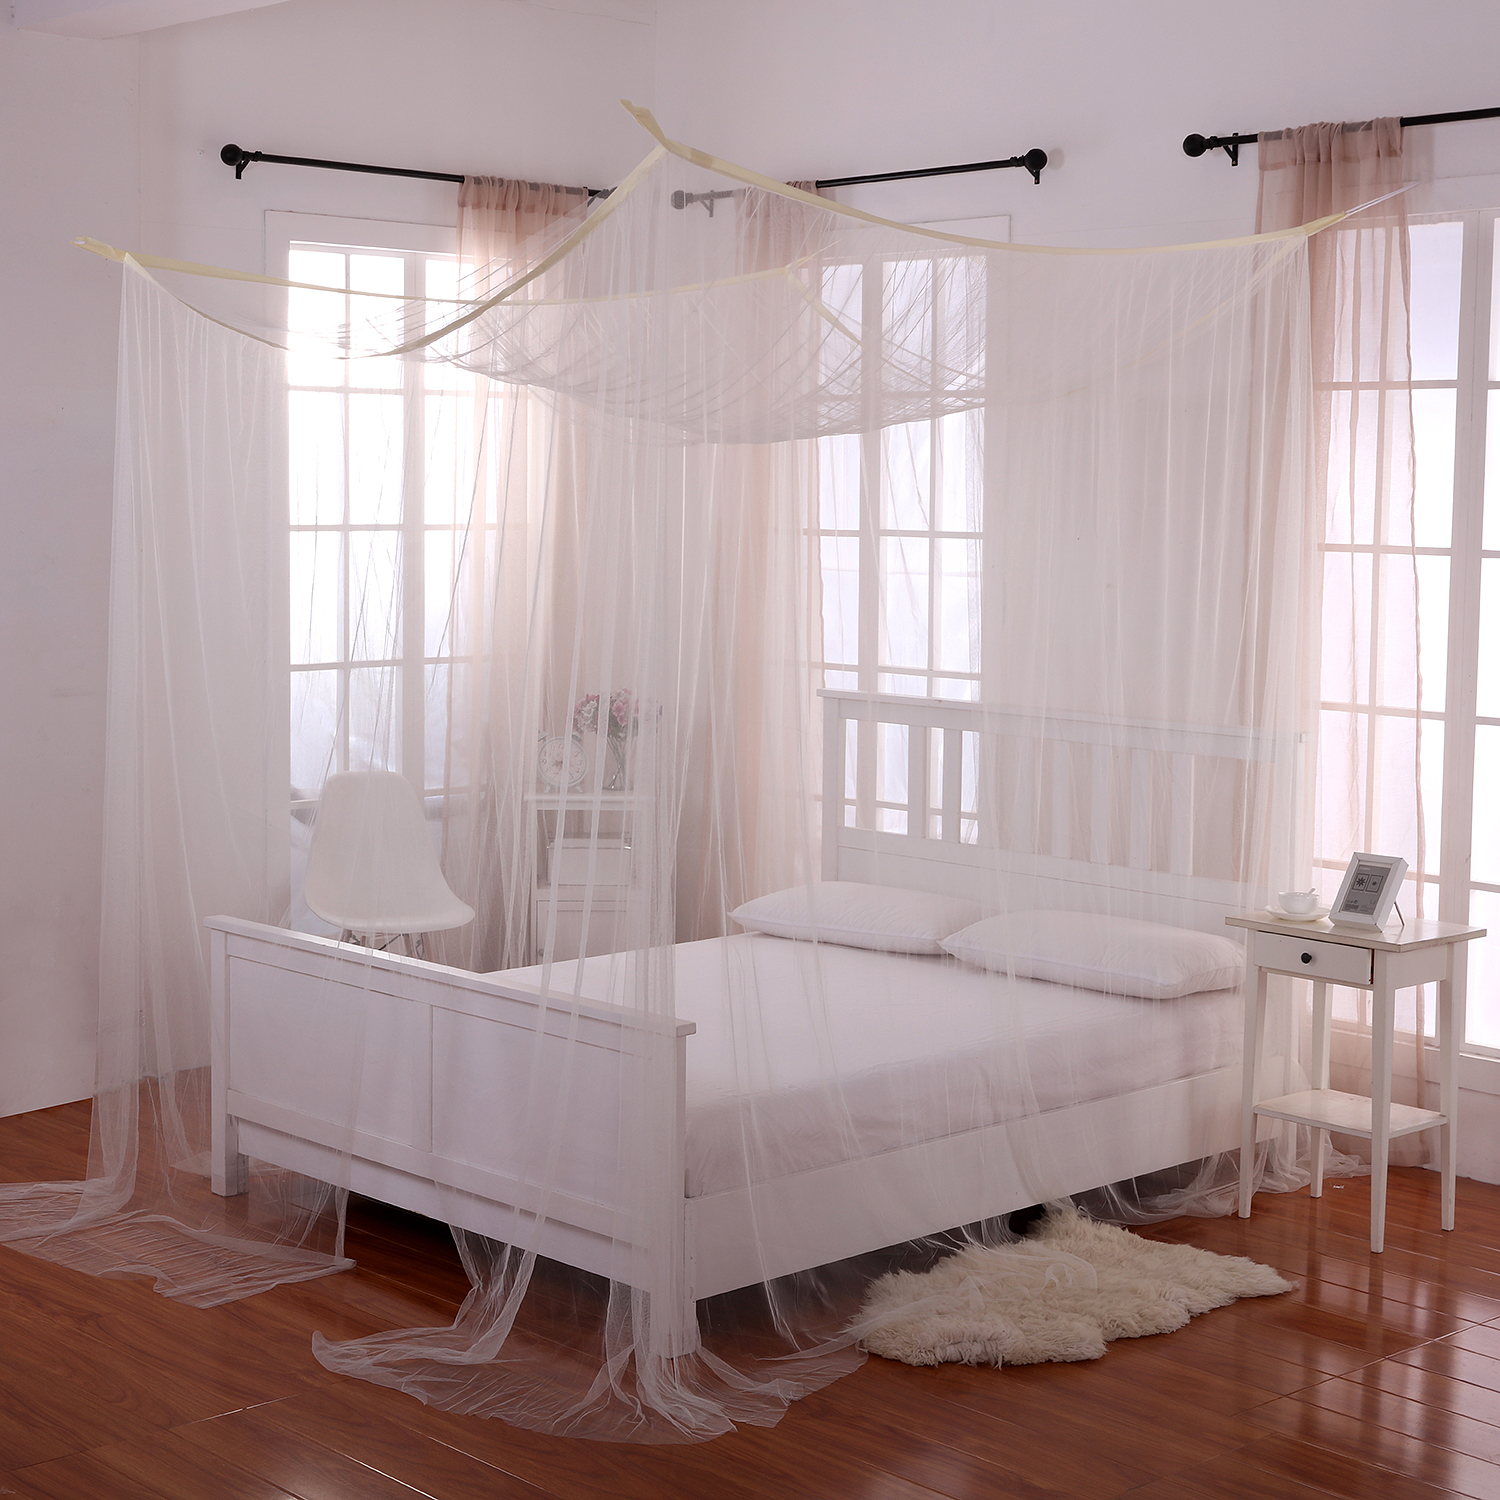 4 Post Canopy Bed Casablanca Palace 4 Post Bed Sheer Panel Canopy